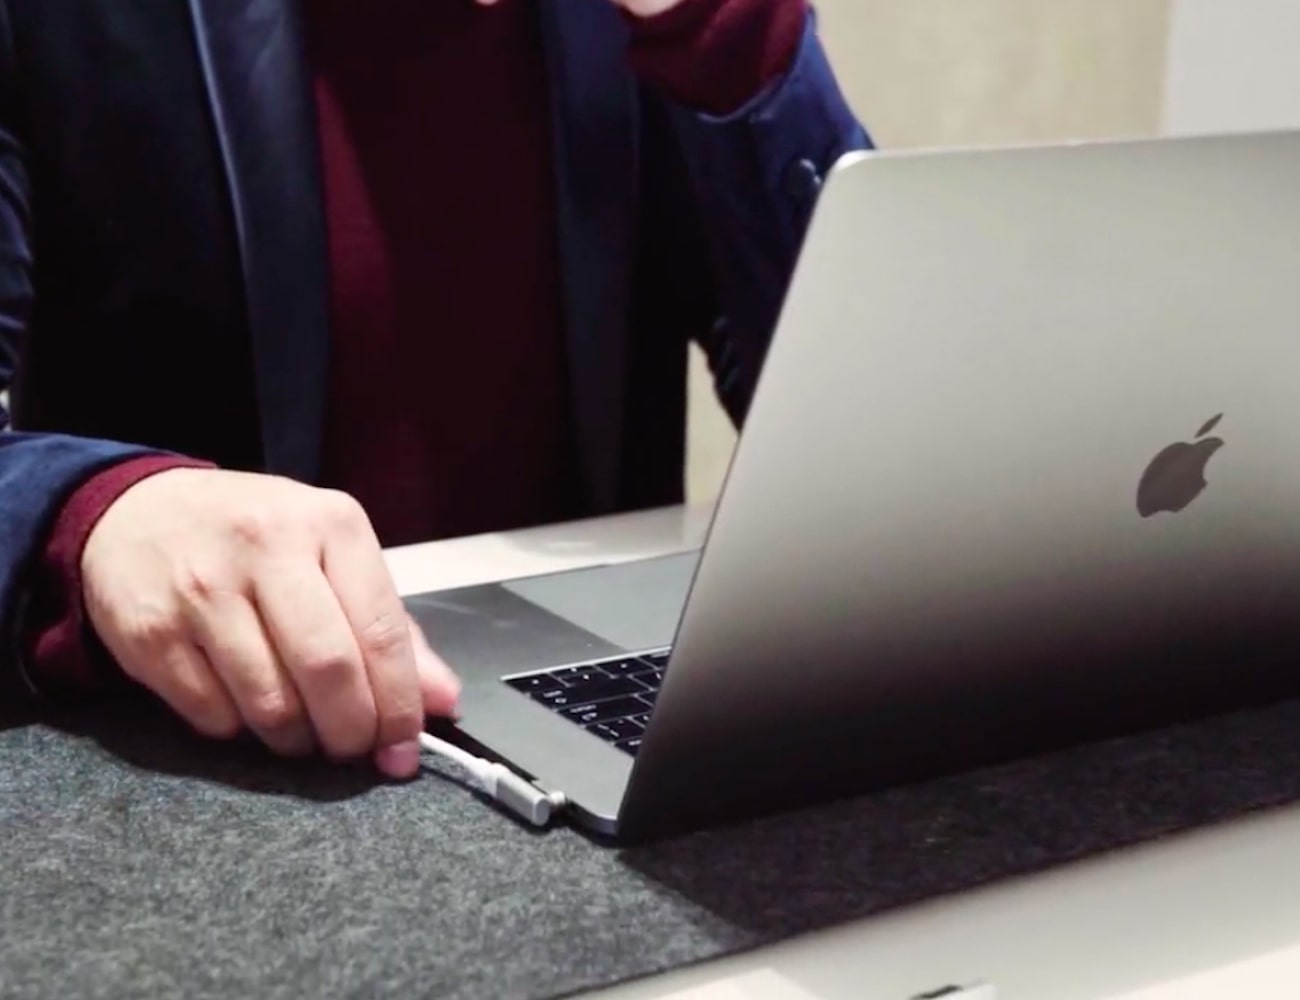 MagX Magnetic MacBook Connector